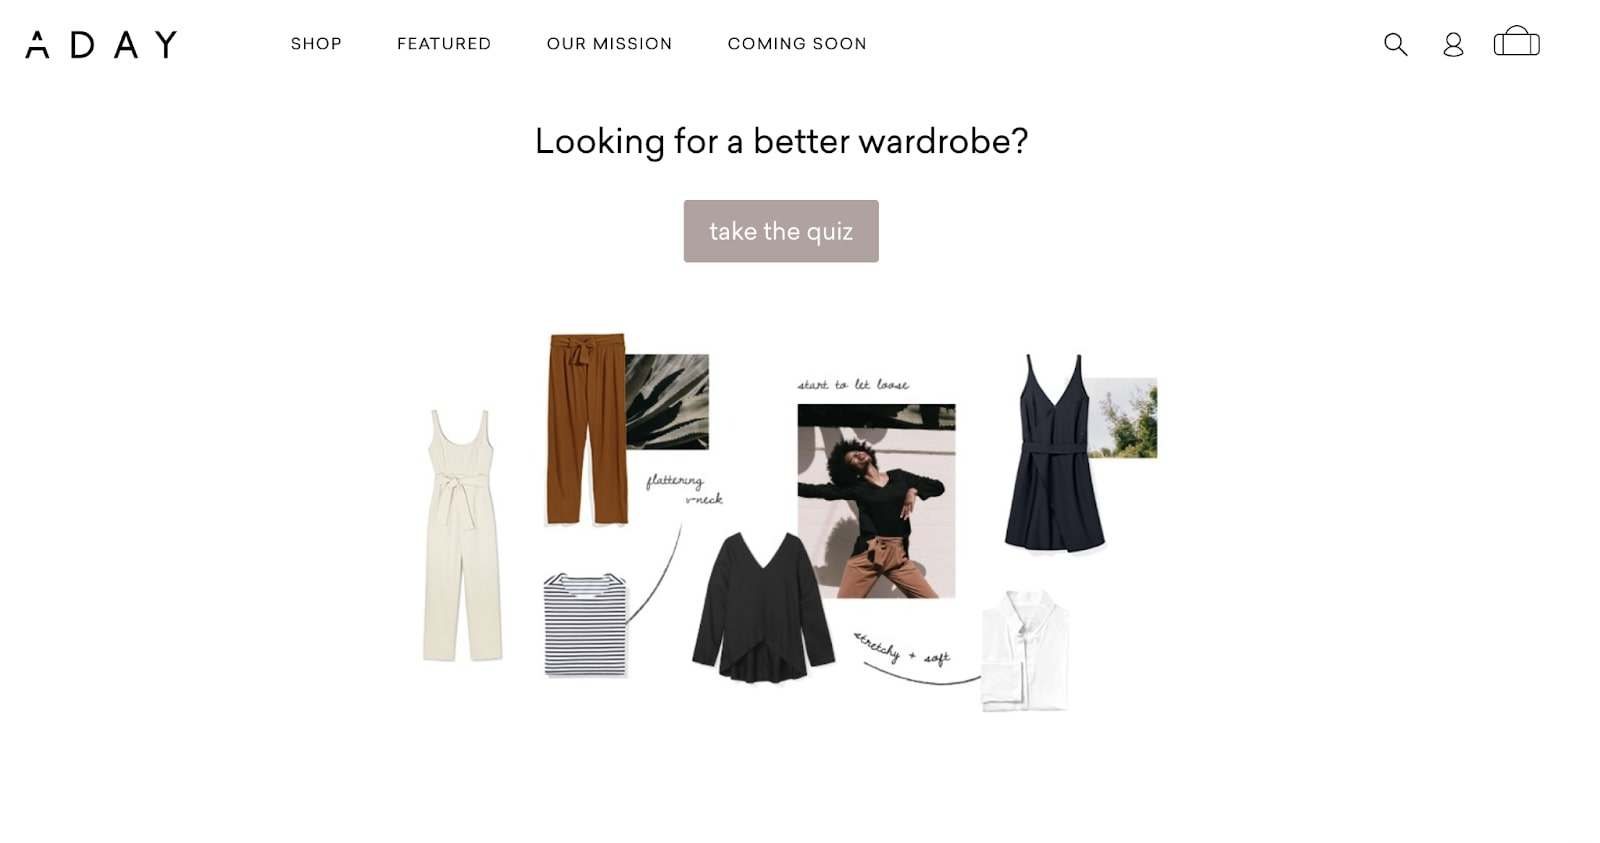 Screenshot of Adays online quiz that asks customers if they're looking for a better wardrobe